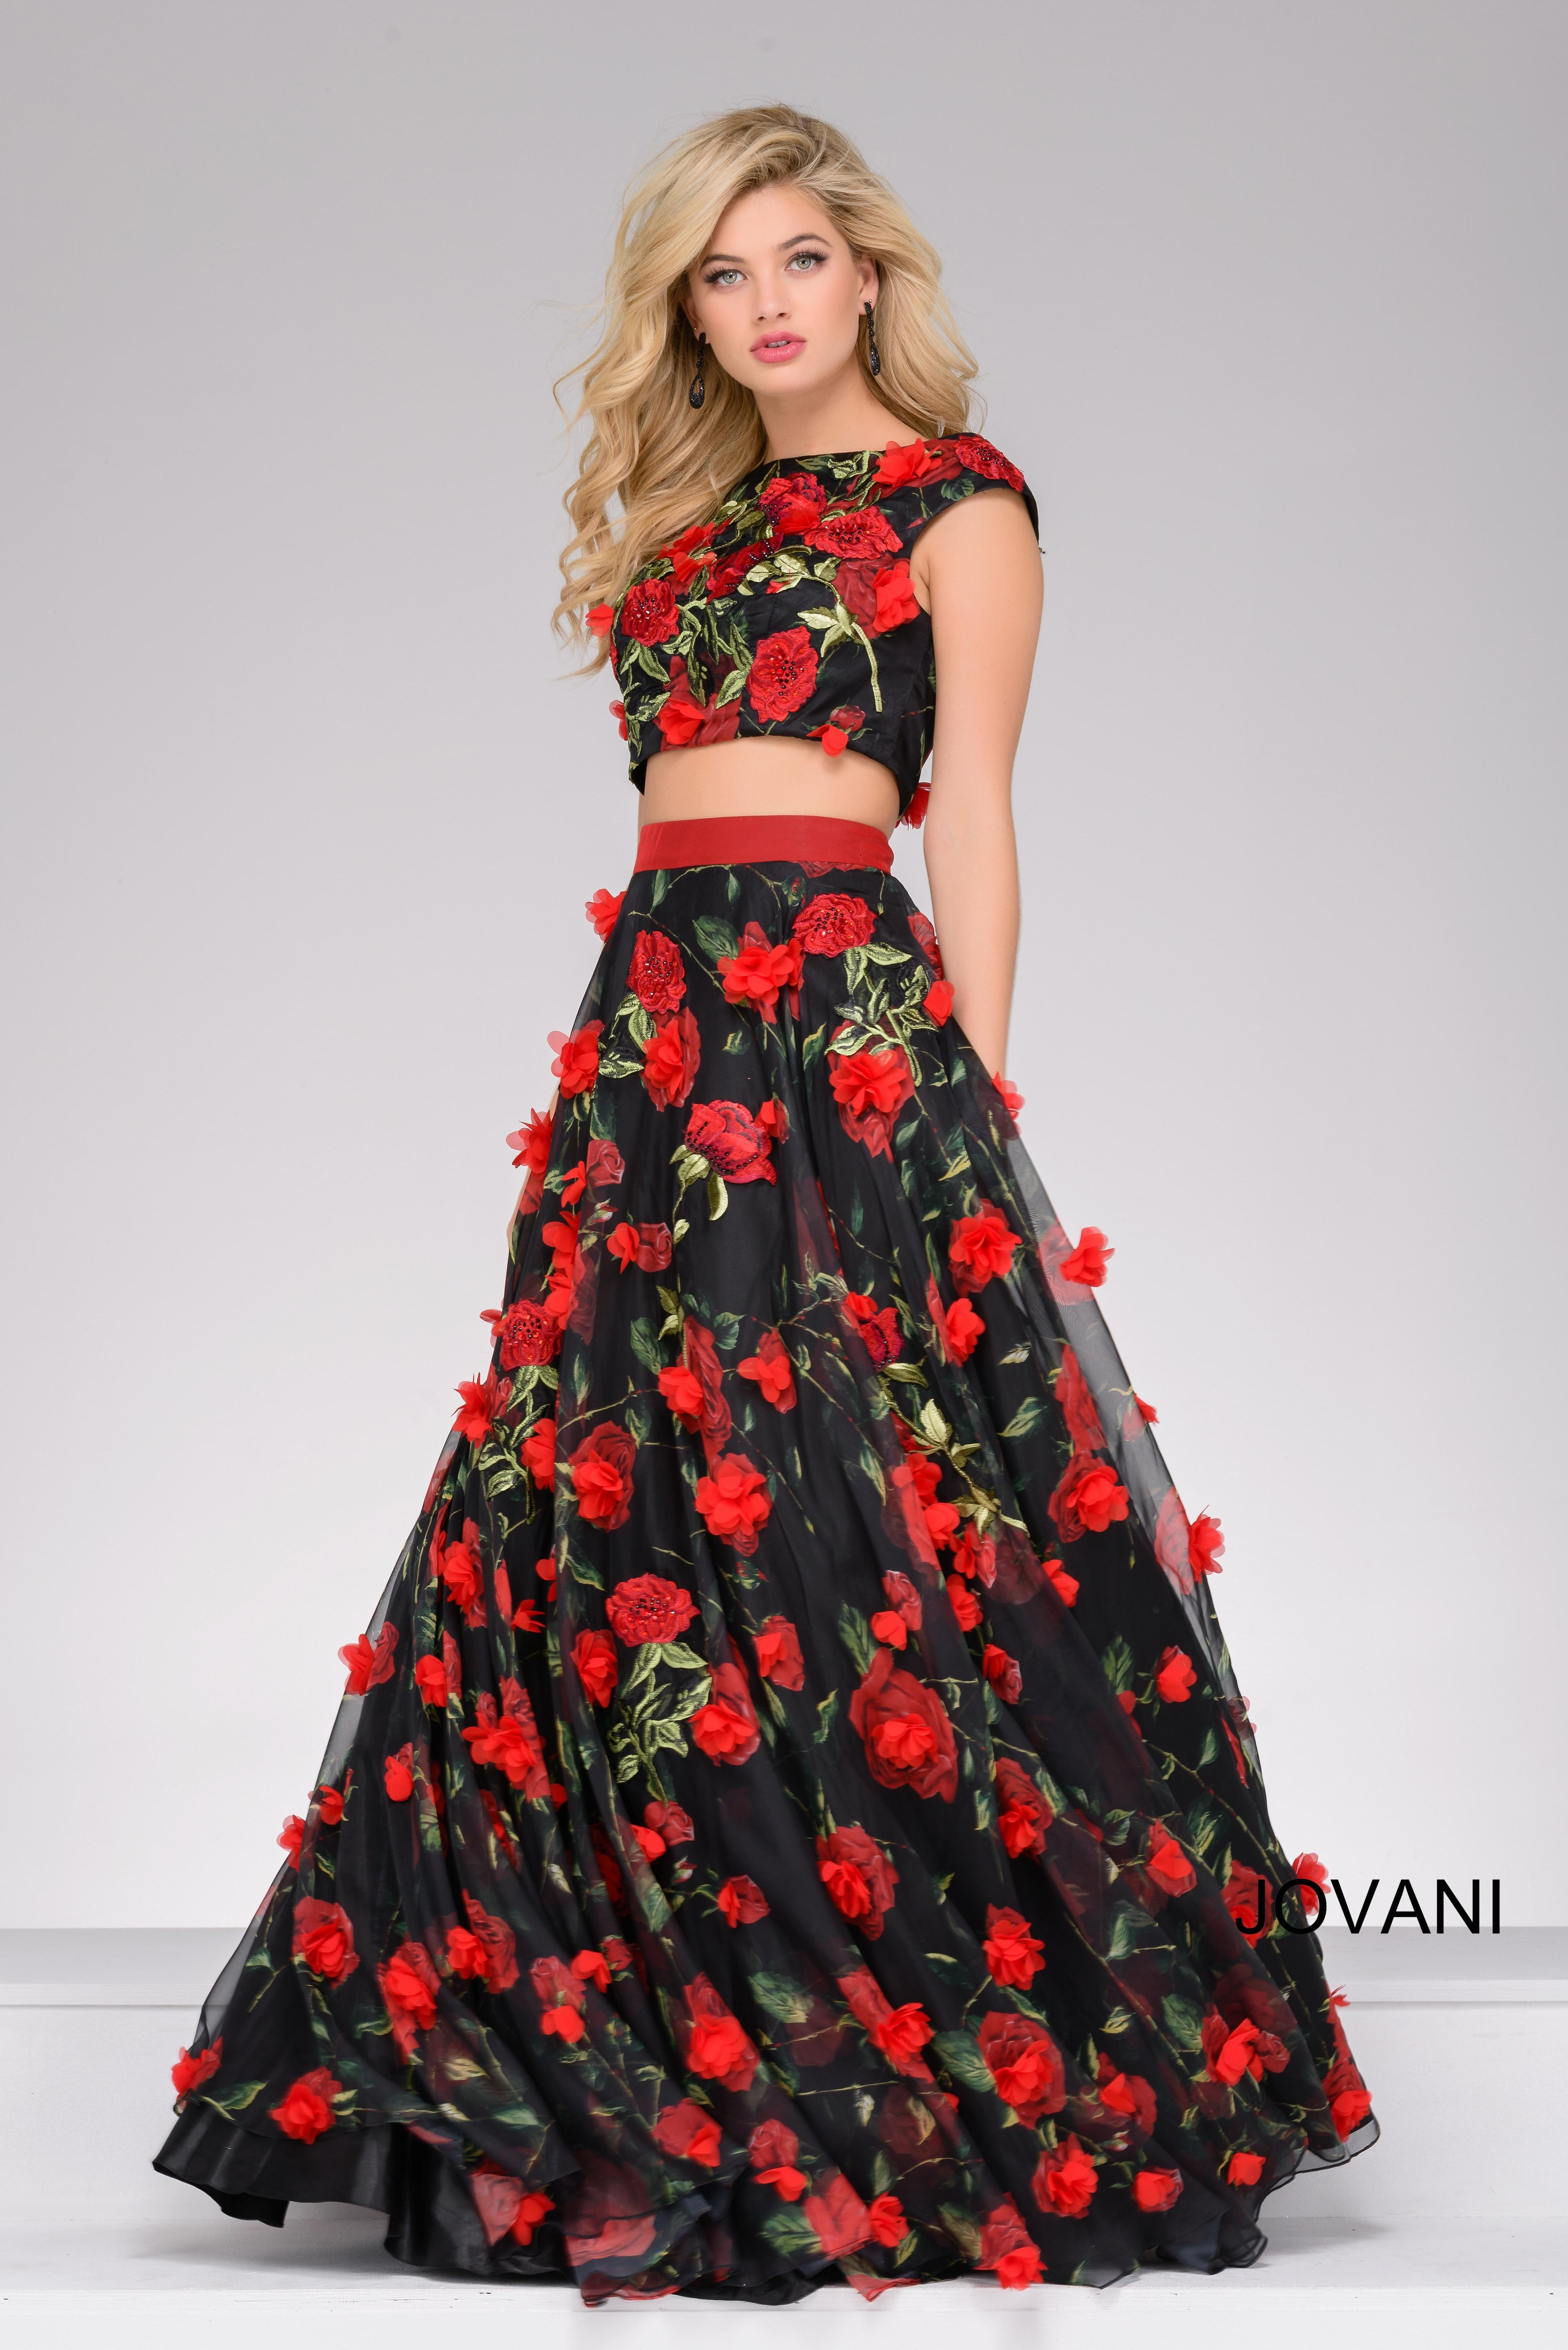 b624f6e8c81 Jovani Two-Piece Floral Applique Ball Gown In Red Black